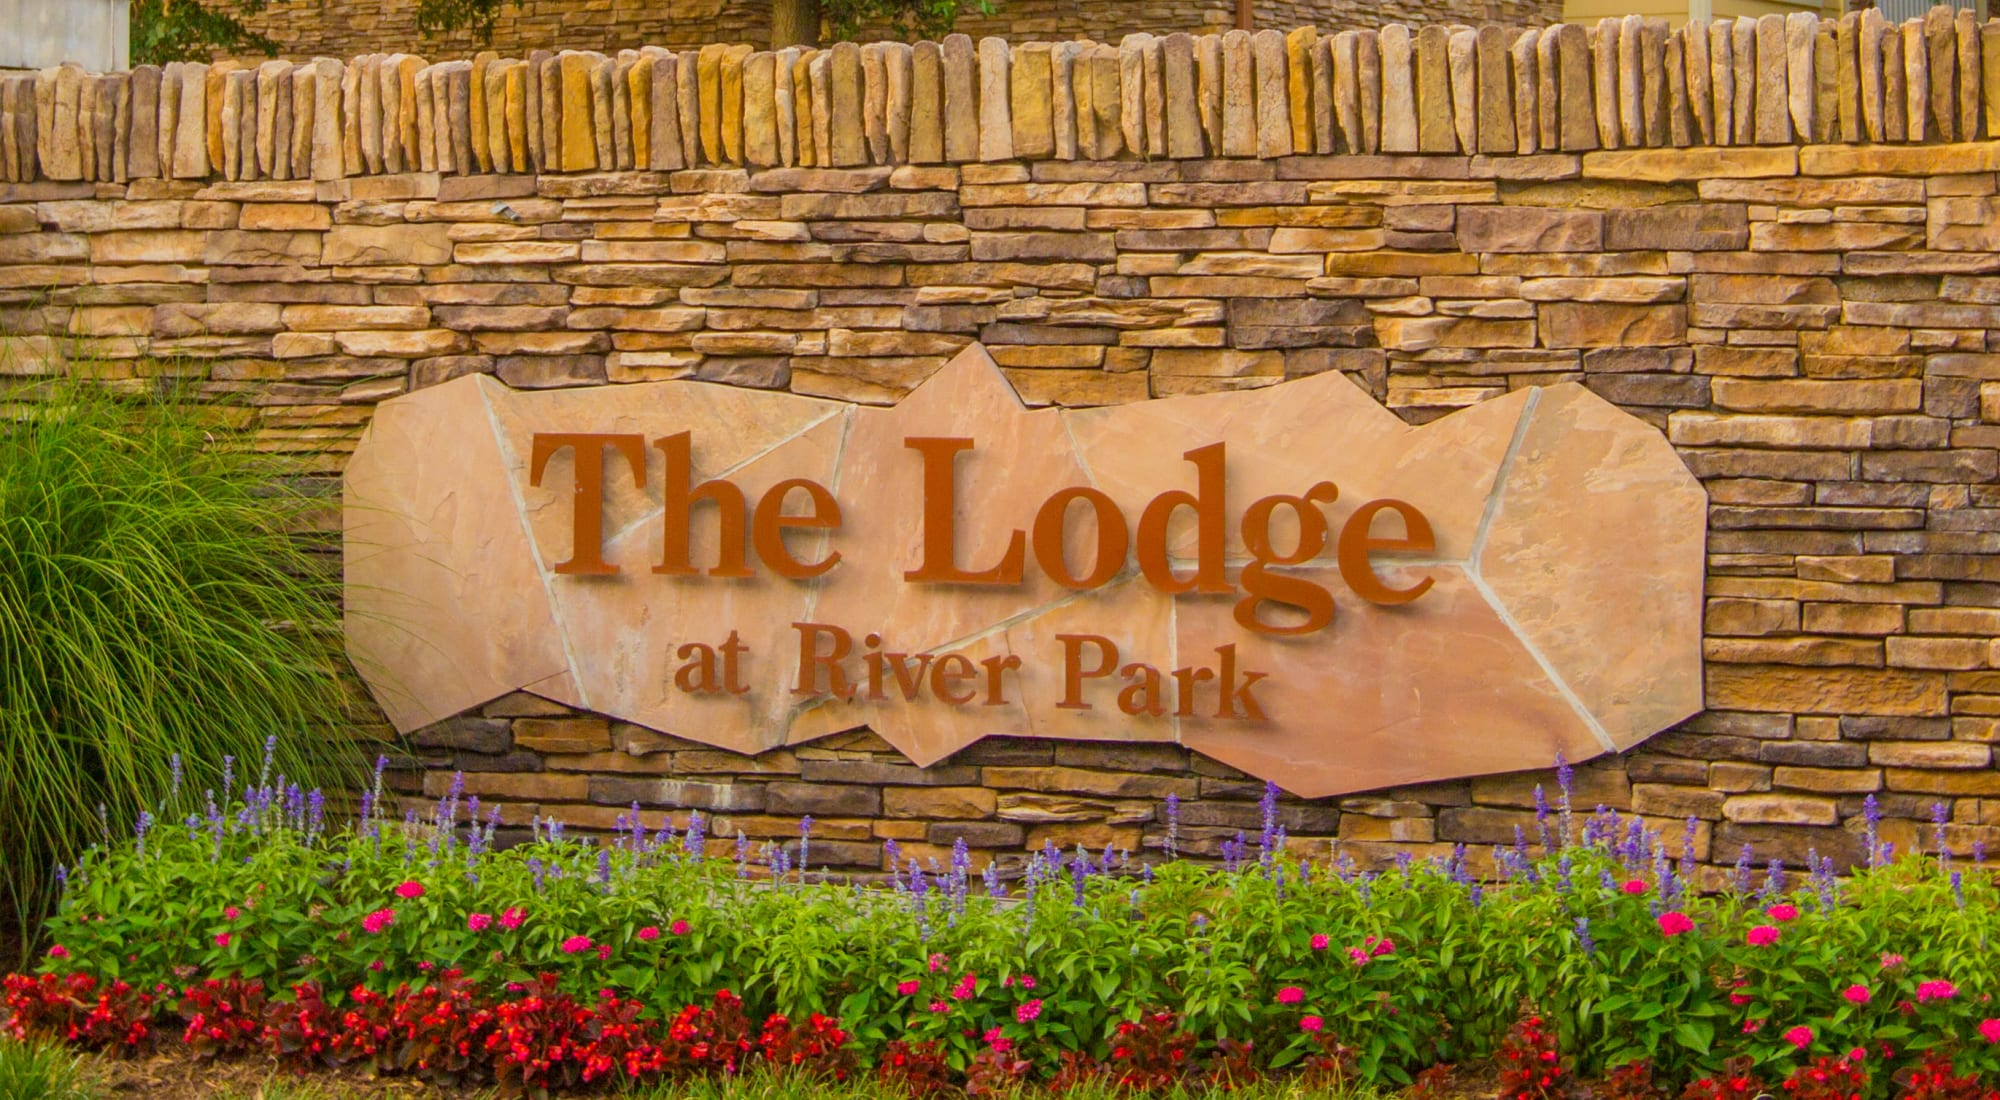 Contact us at The Lodge at River Park in Fort Worth, Texas